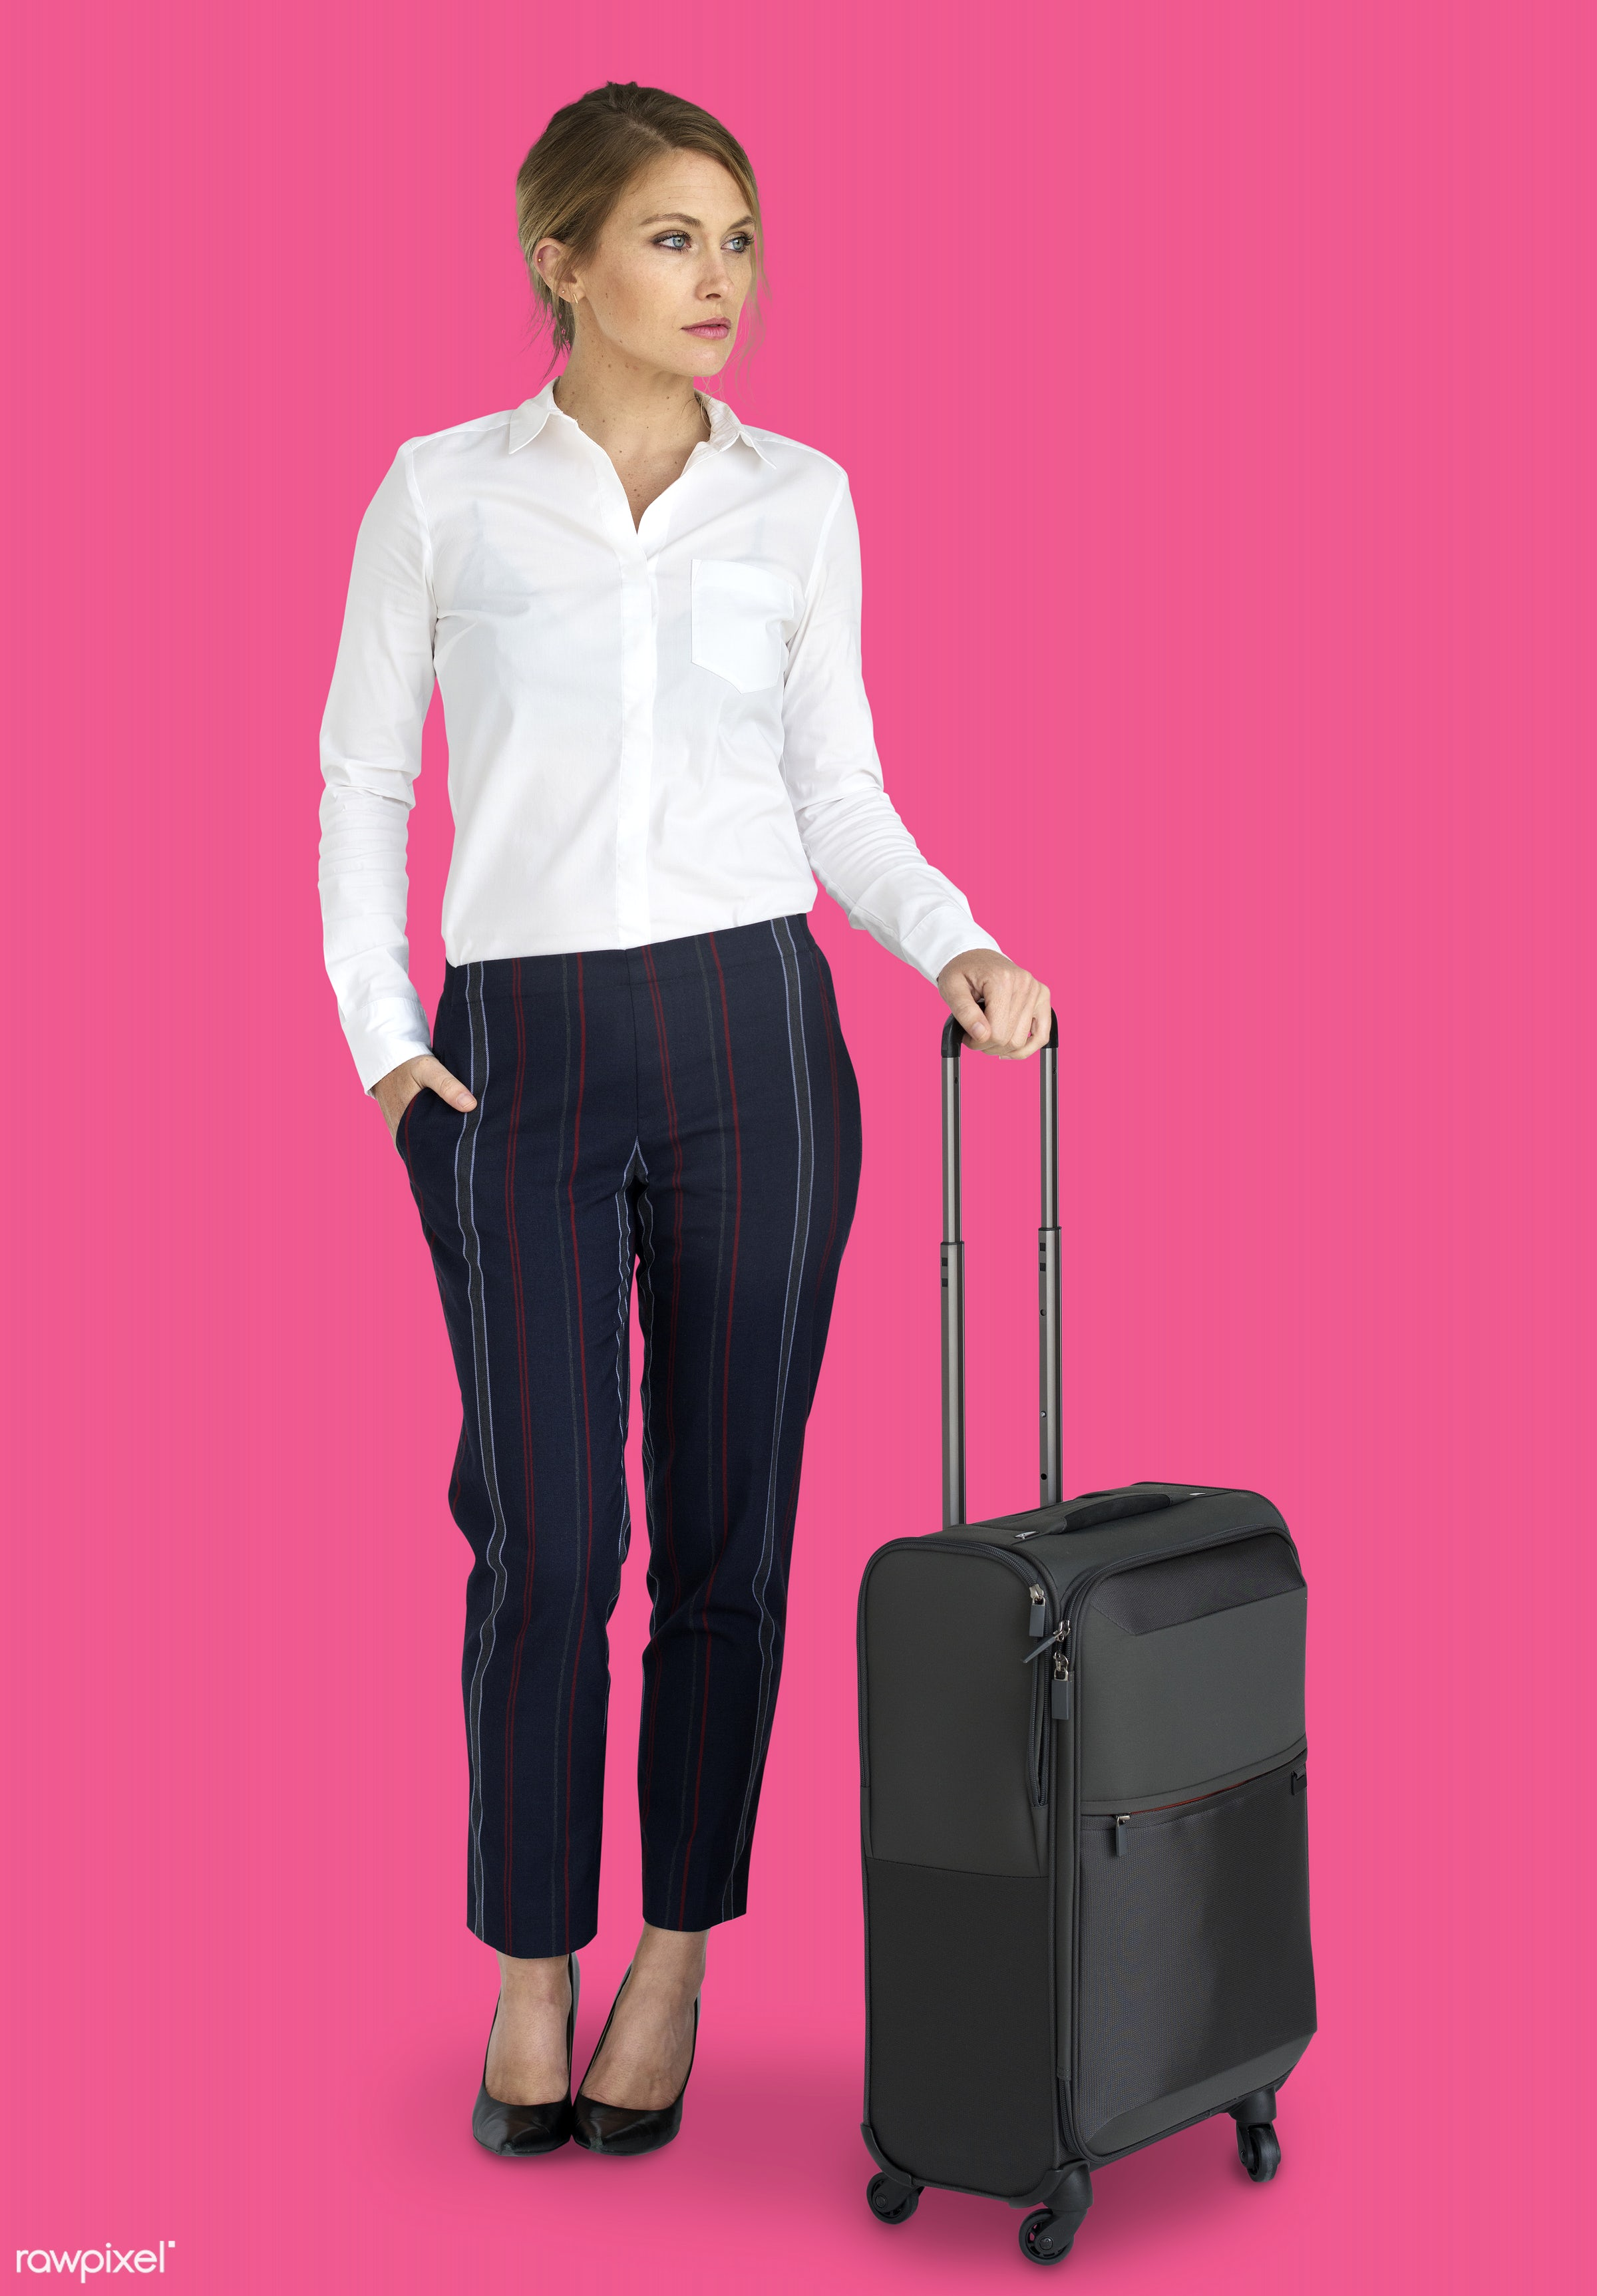 studio, face, person, travel, people, business, pink, trip, man, isolated, suitcase, male, traveler, businesswoman, business...